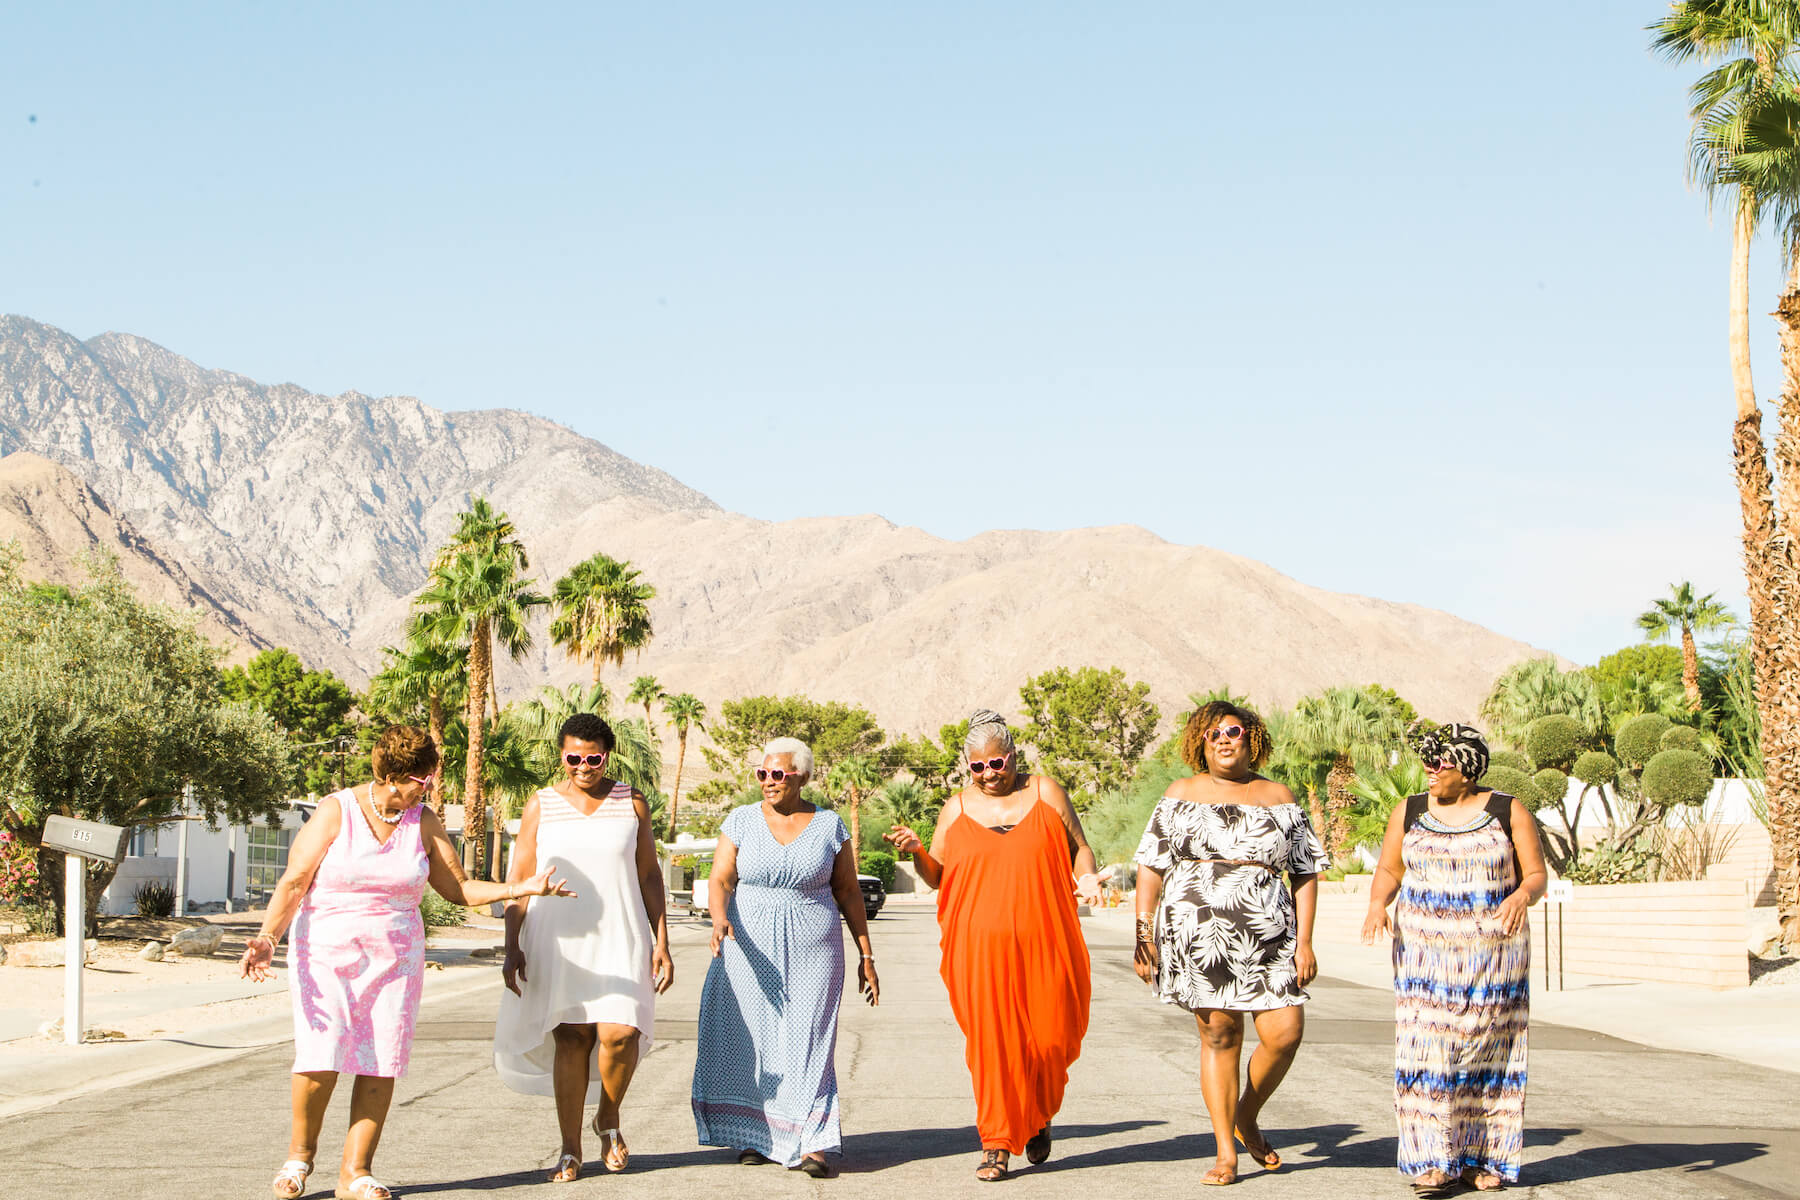 ​Top 8 Places to Take Photos in Palm Springs